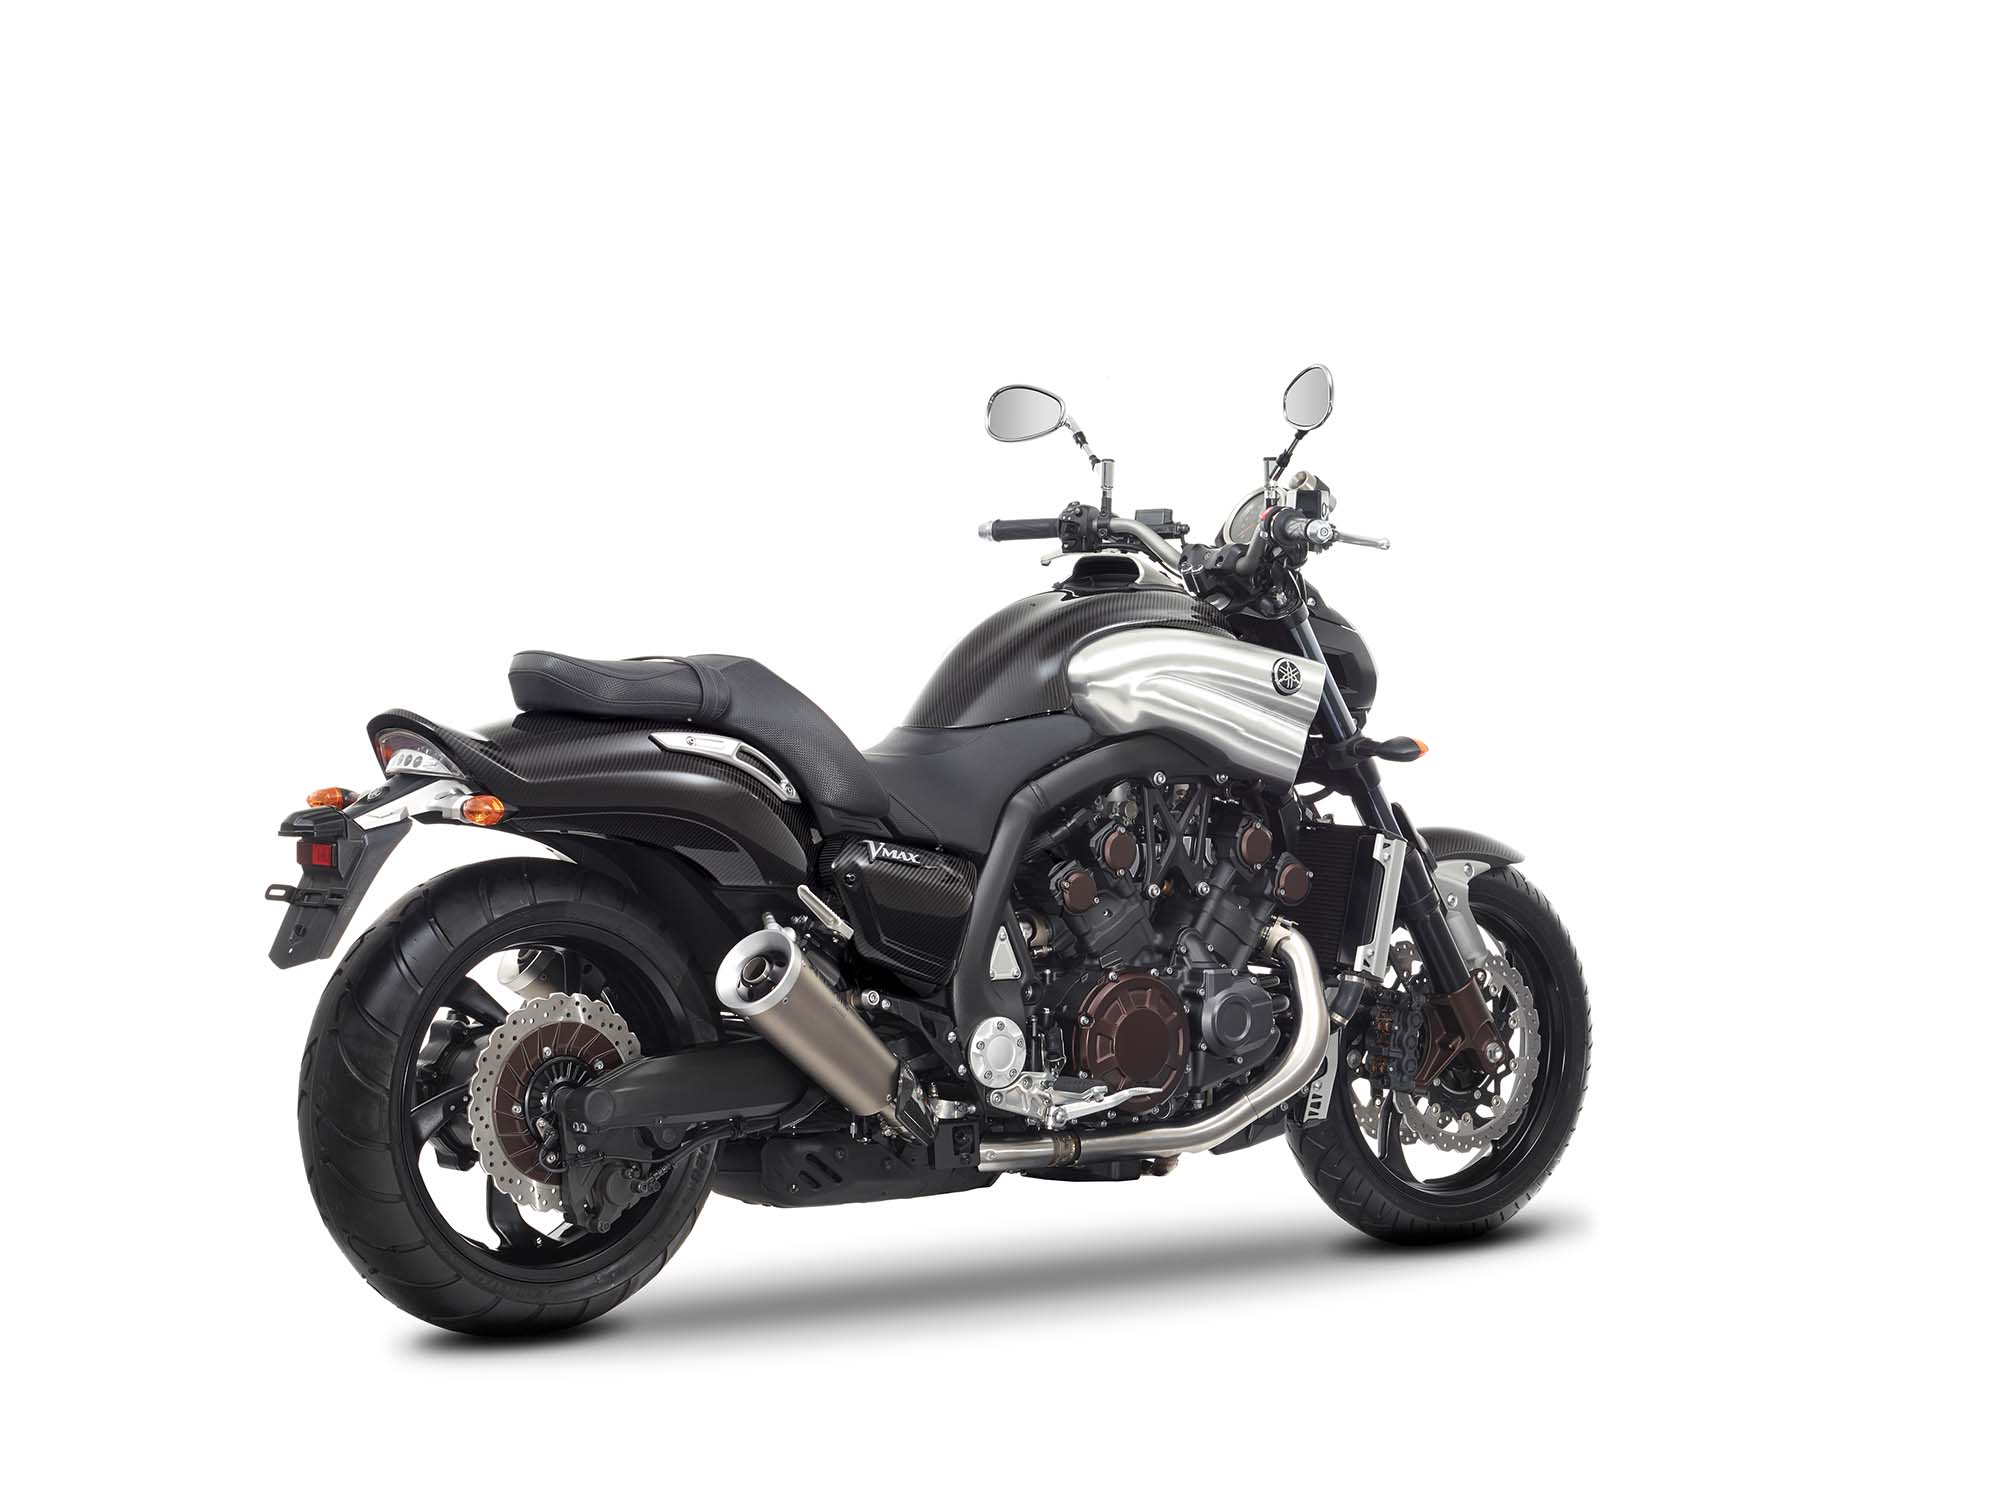 Yamaha Vmax Carbon Edition